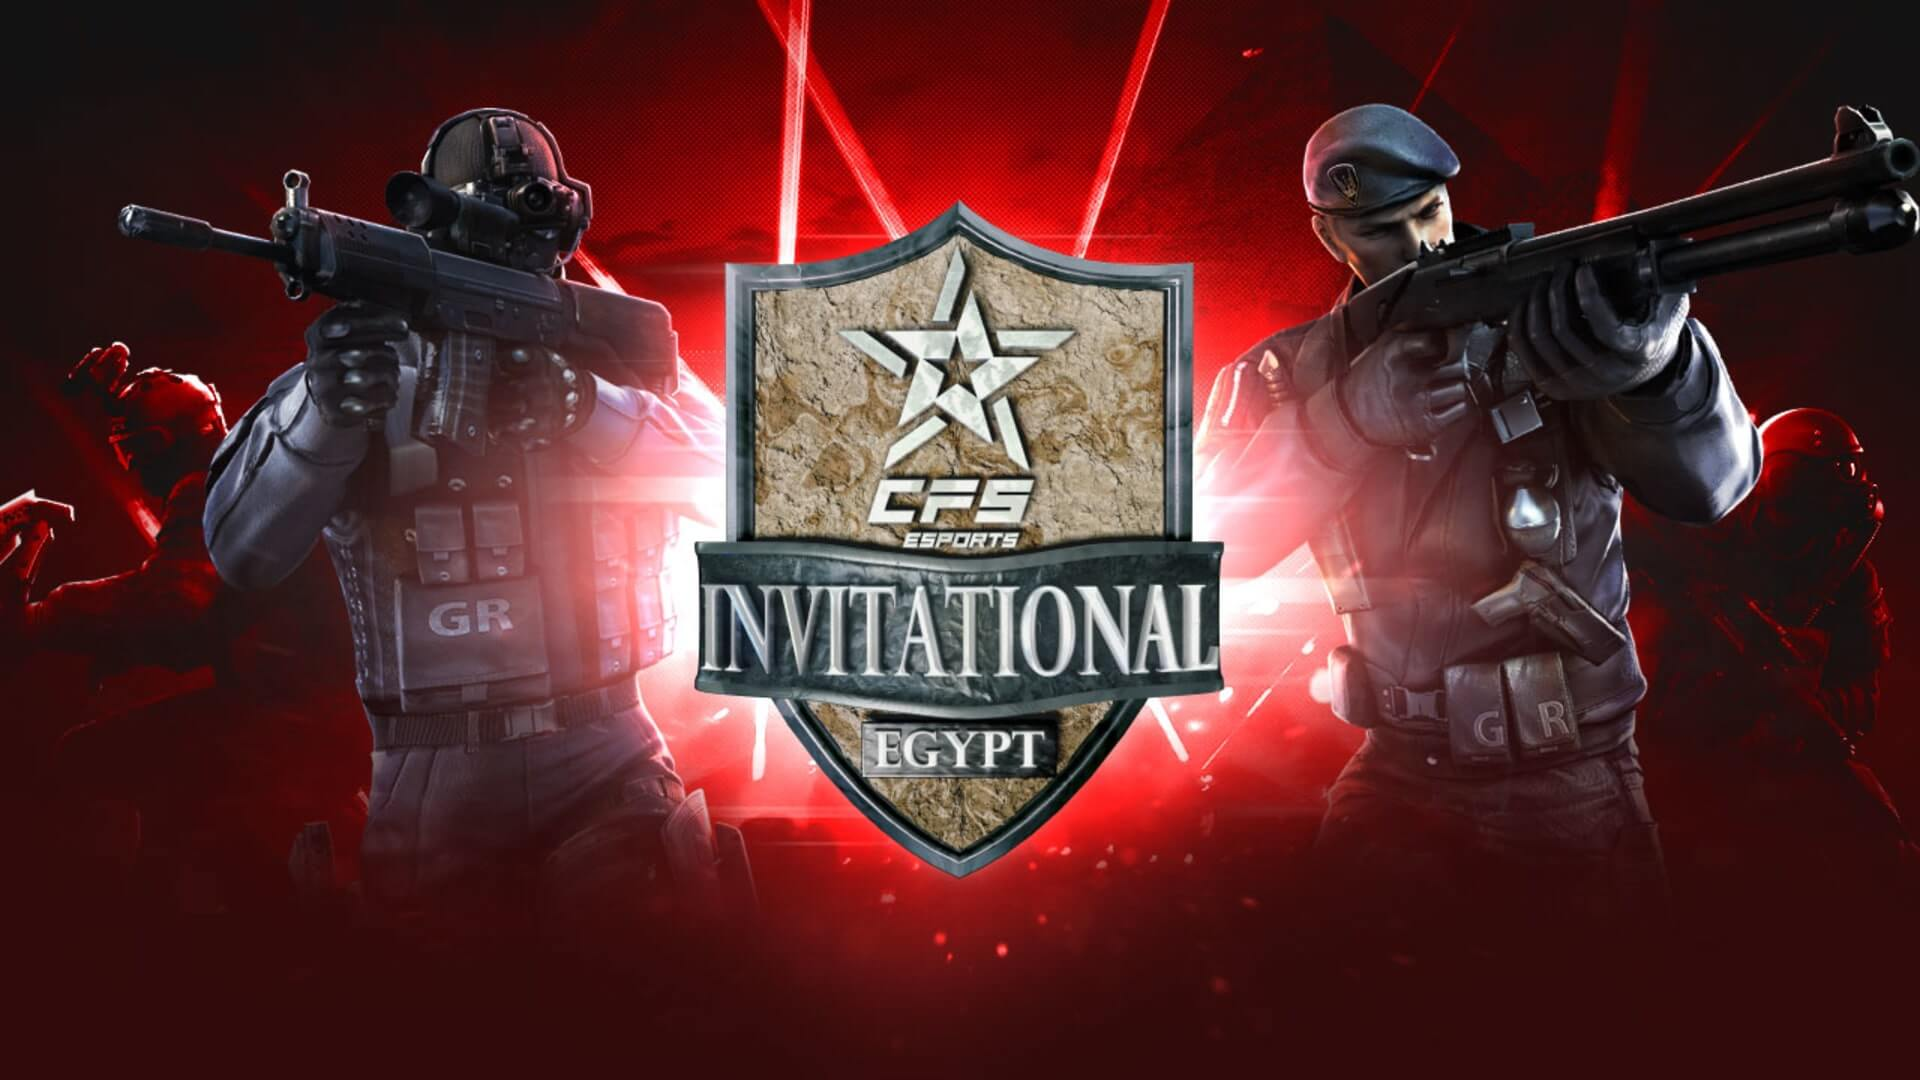 cfs invitational egypt 2019 CrossFire